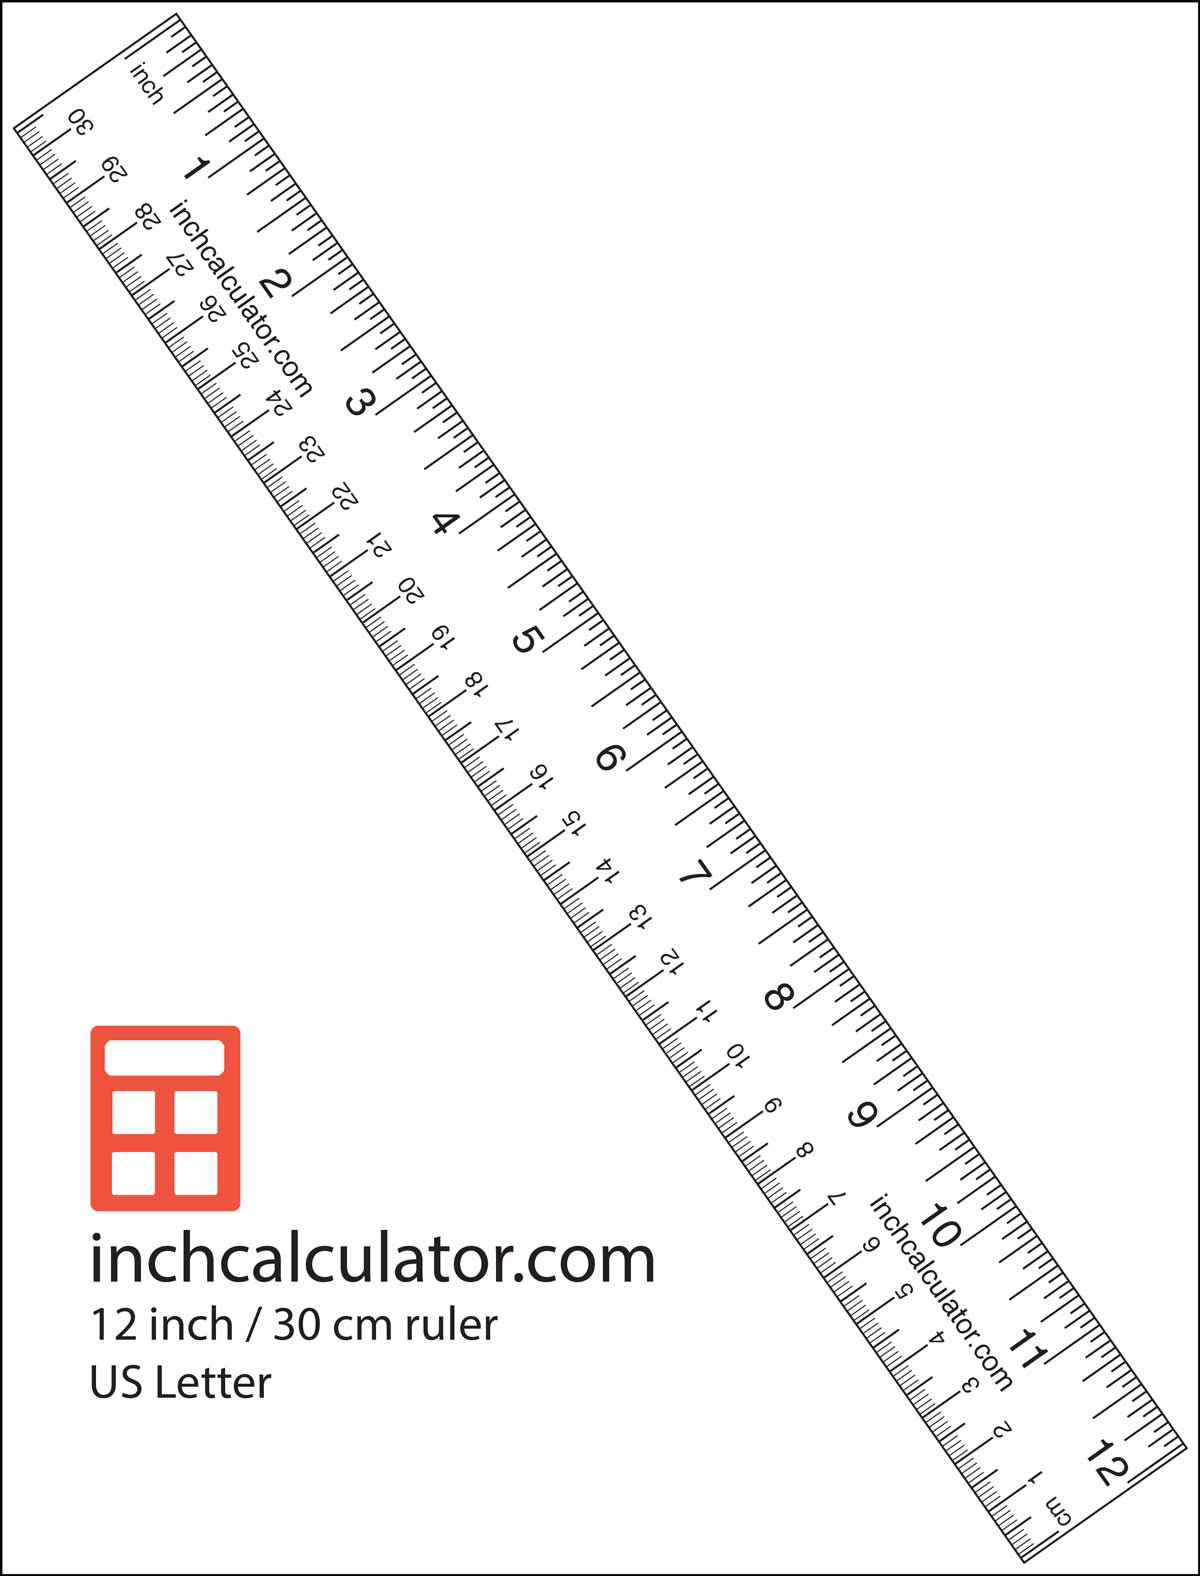 print a paper ruler to take measurements when you dont have a tape measure